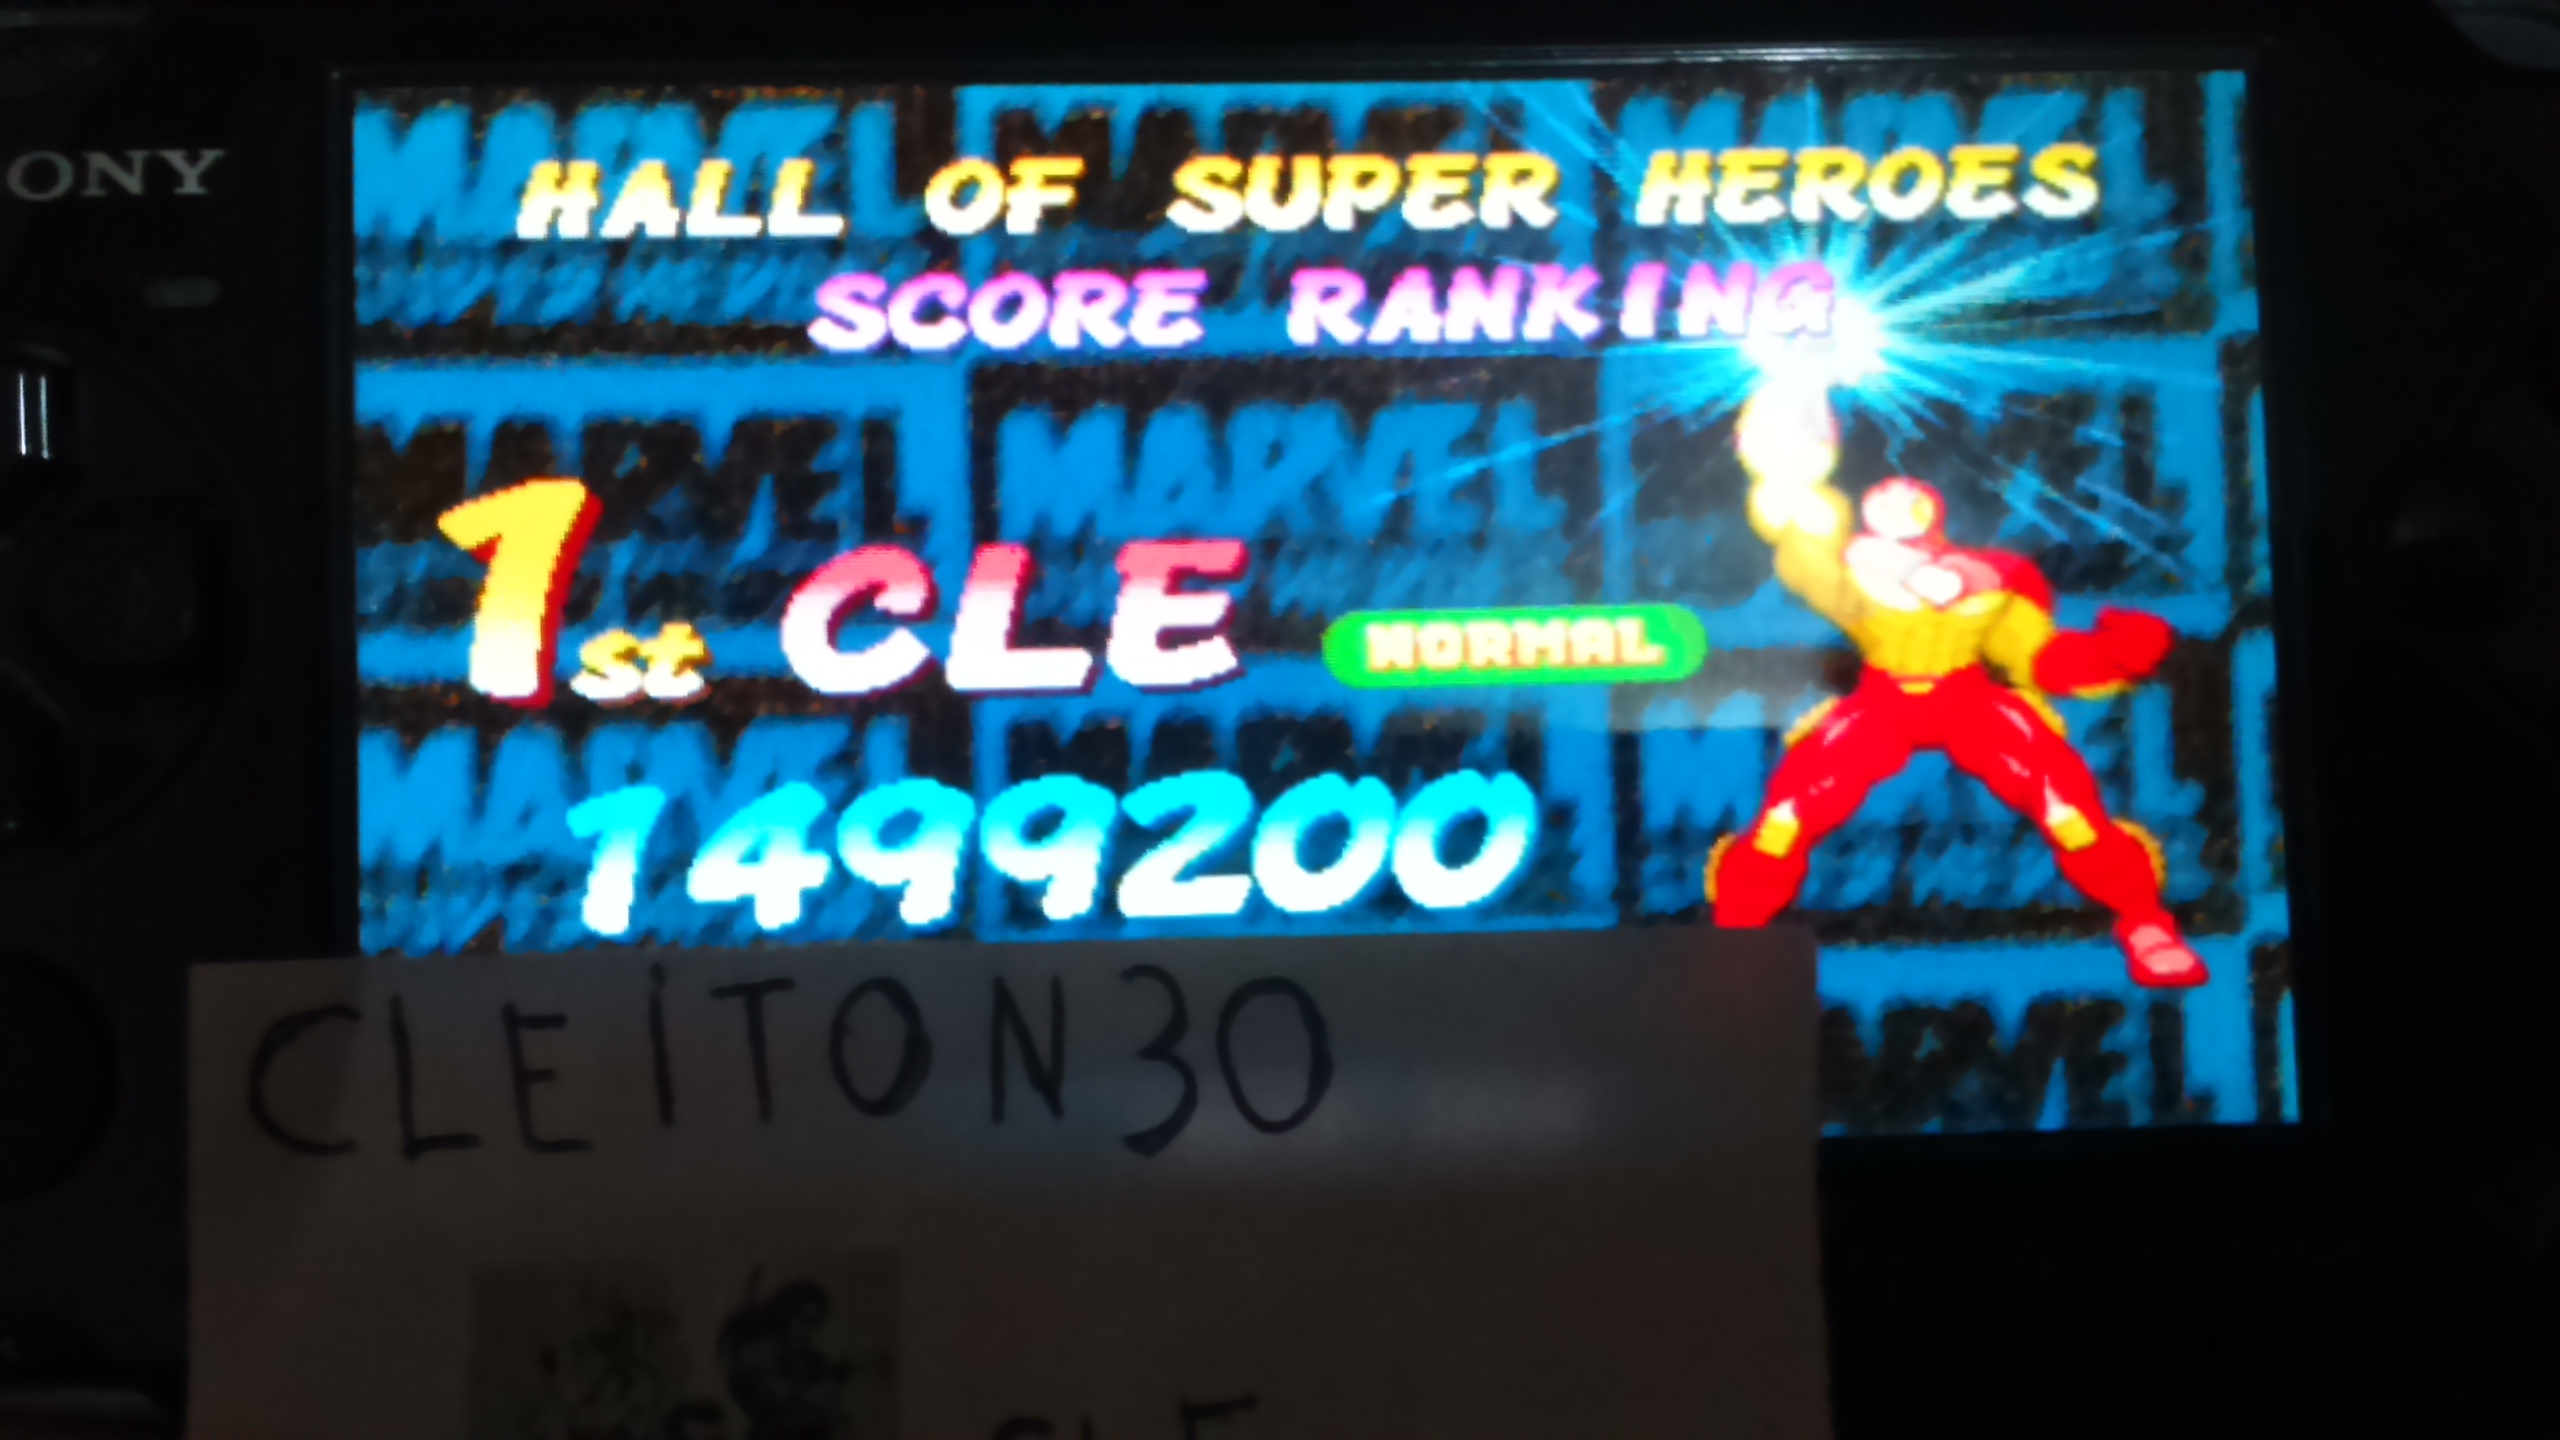 Cleiton30: Marvel Super Heroes [msh] (Arcade Emulated / M.A.M.E.) 1,499,200 points on 2016-05-21 16:35:53